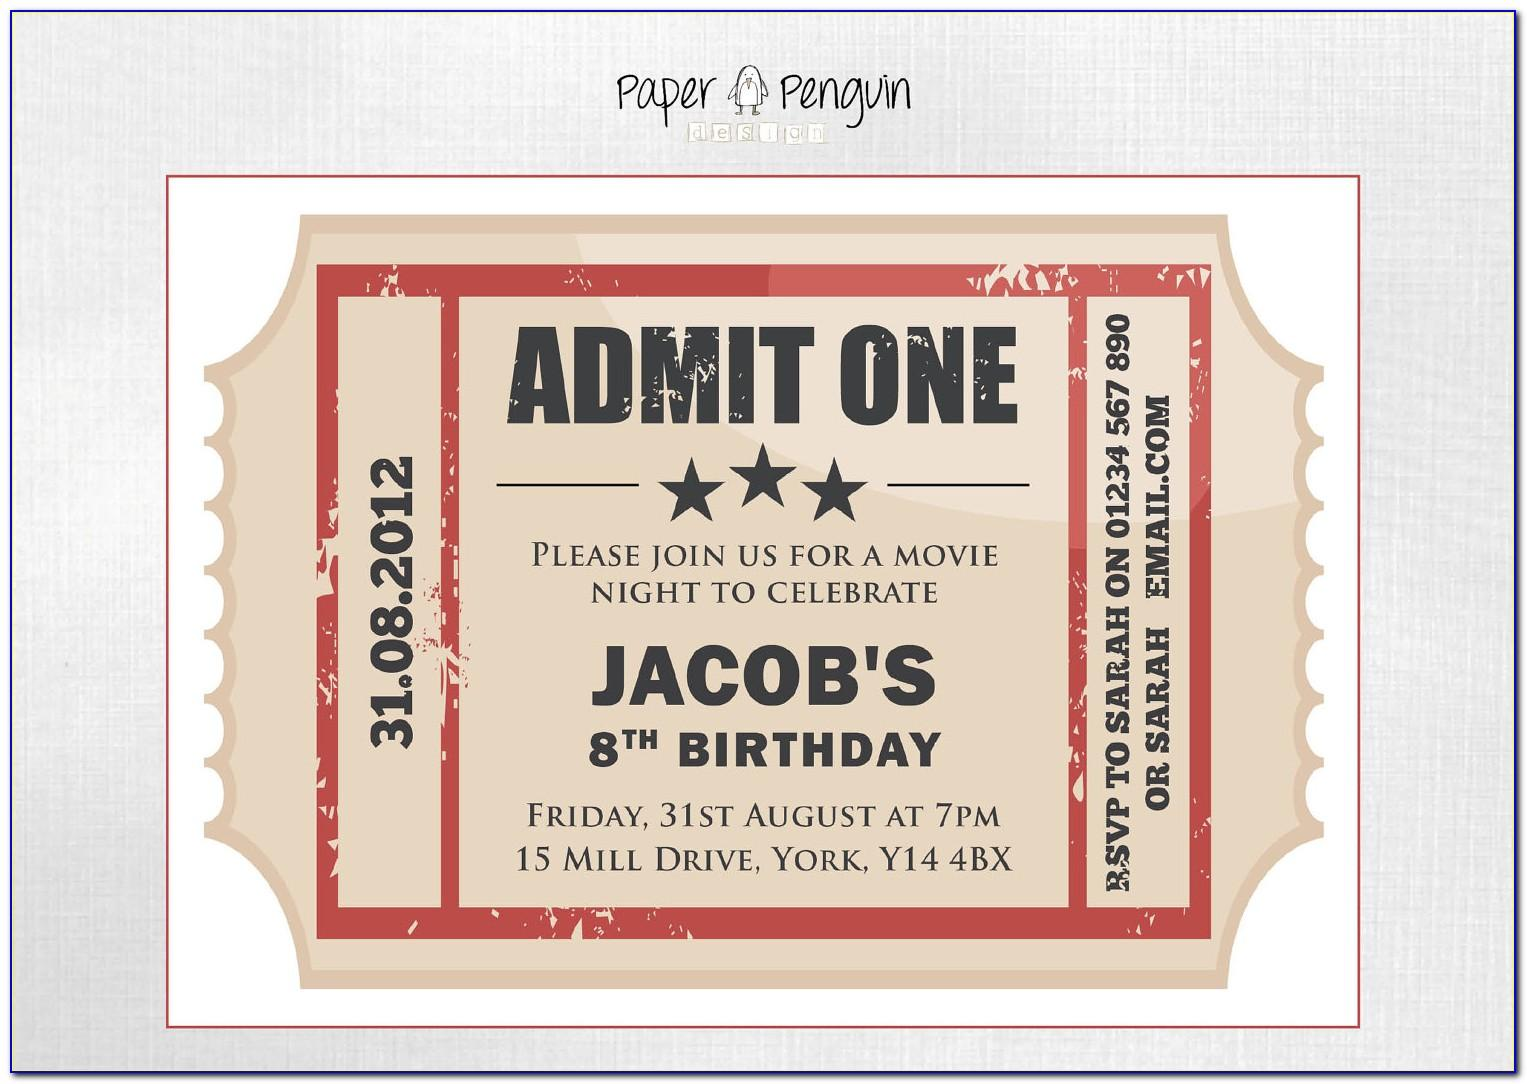 Admit One Party Invitation Template